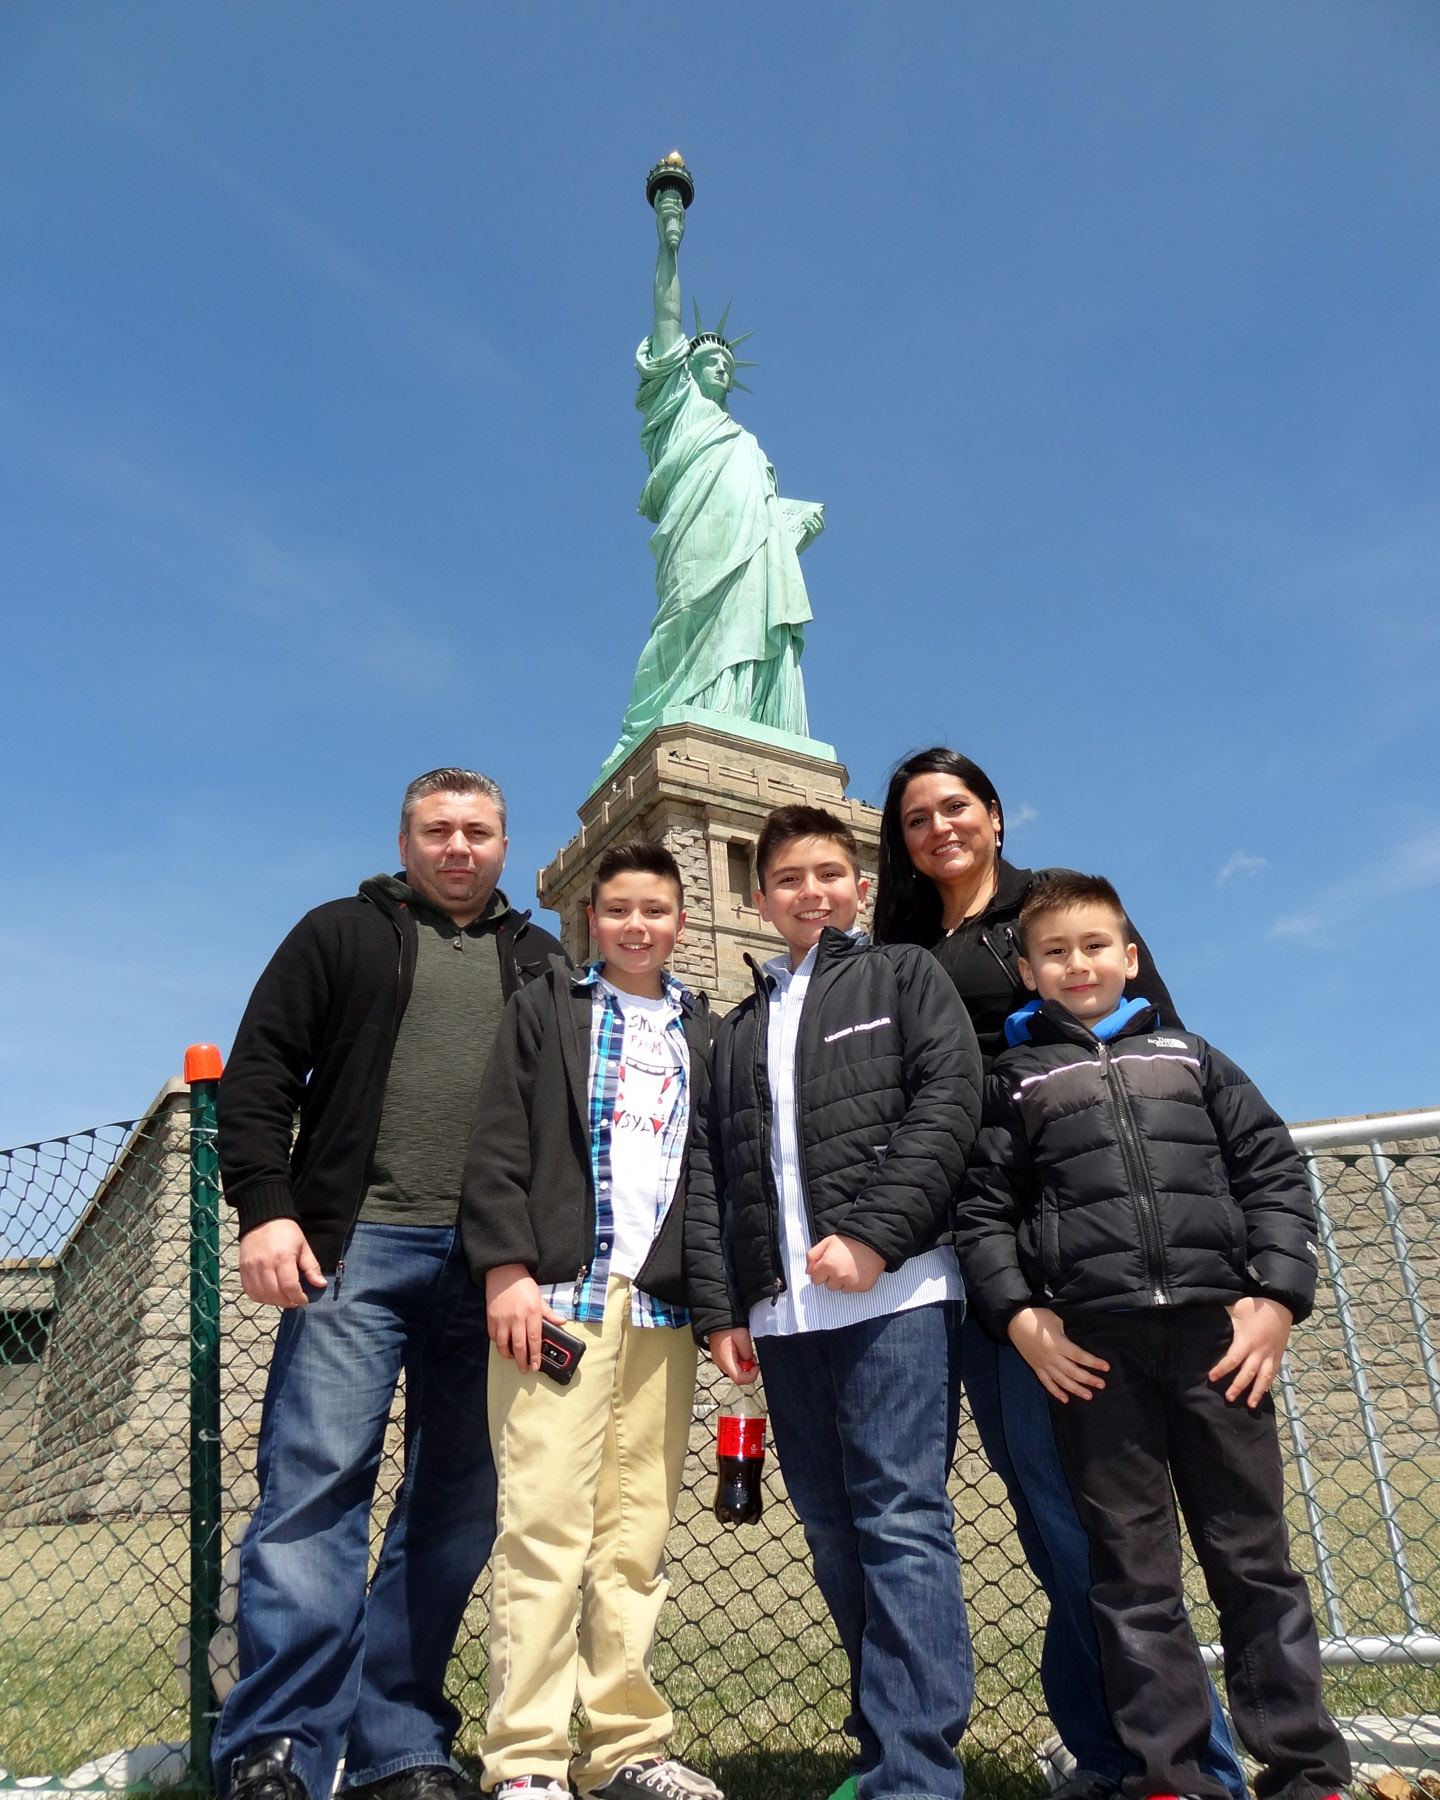 Statue of Liberty, New York, USA 2014